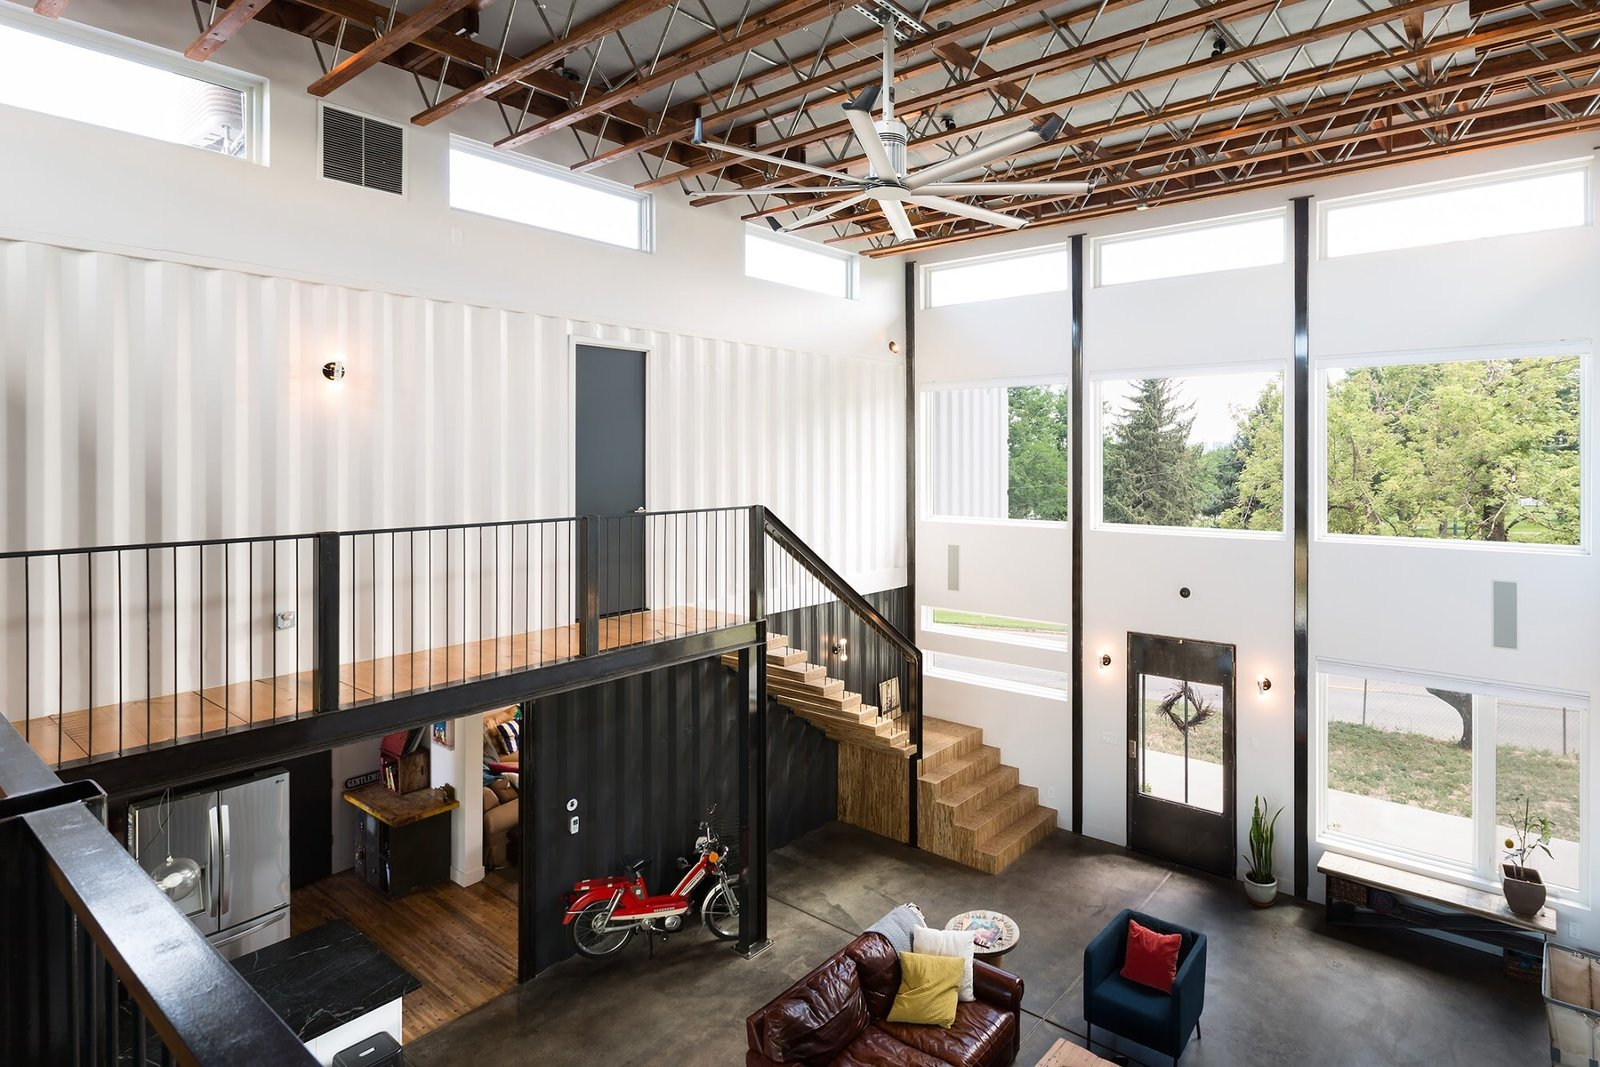 Living Room, Chair, Bench, Sofa, End Tables, Ceiling Lighting, Floor Lighting, Table Lighting, and Medium Hardwood Floor Chris Boylen Photography  The Container house